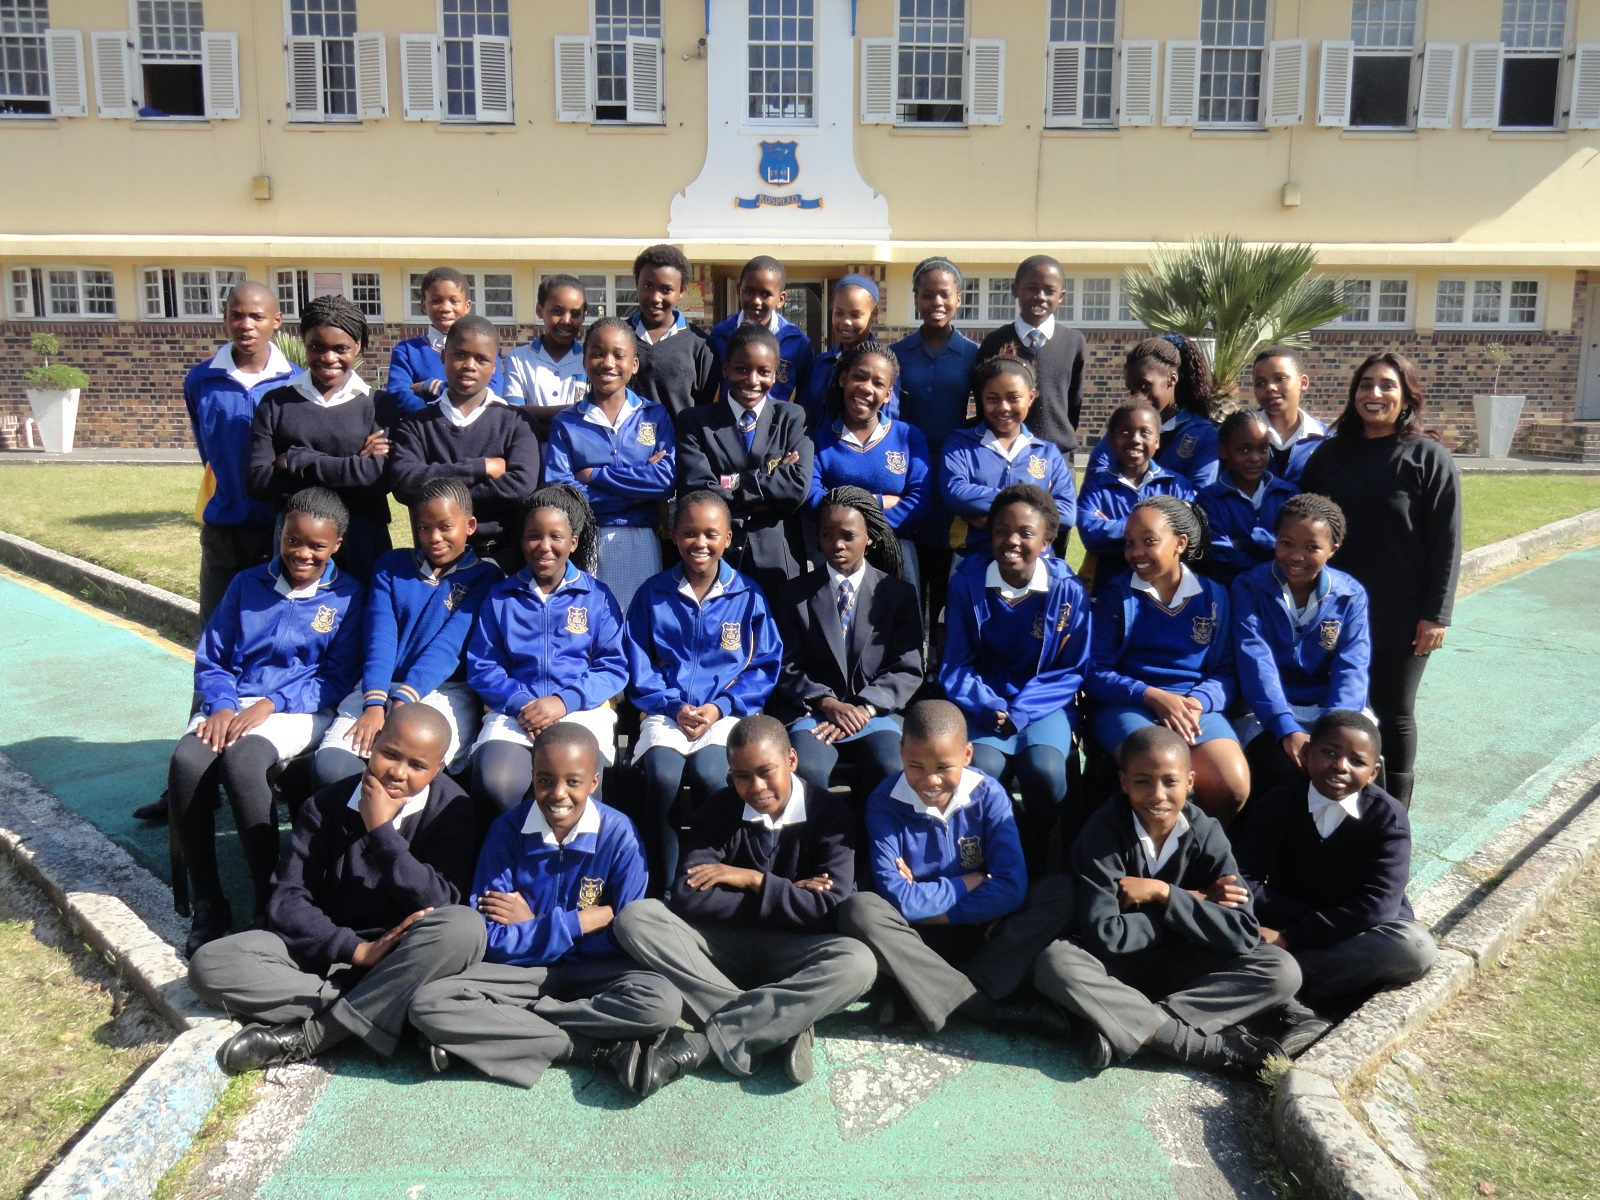 Rosmead Primary School